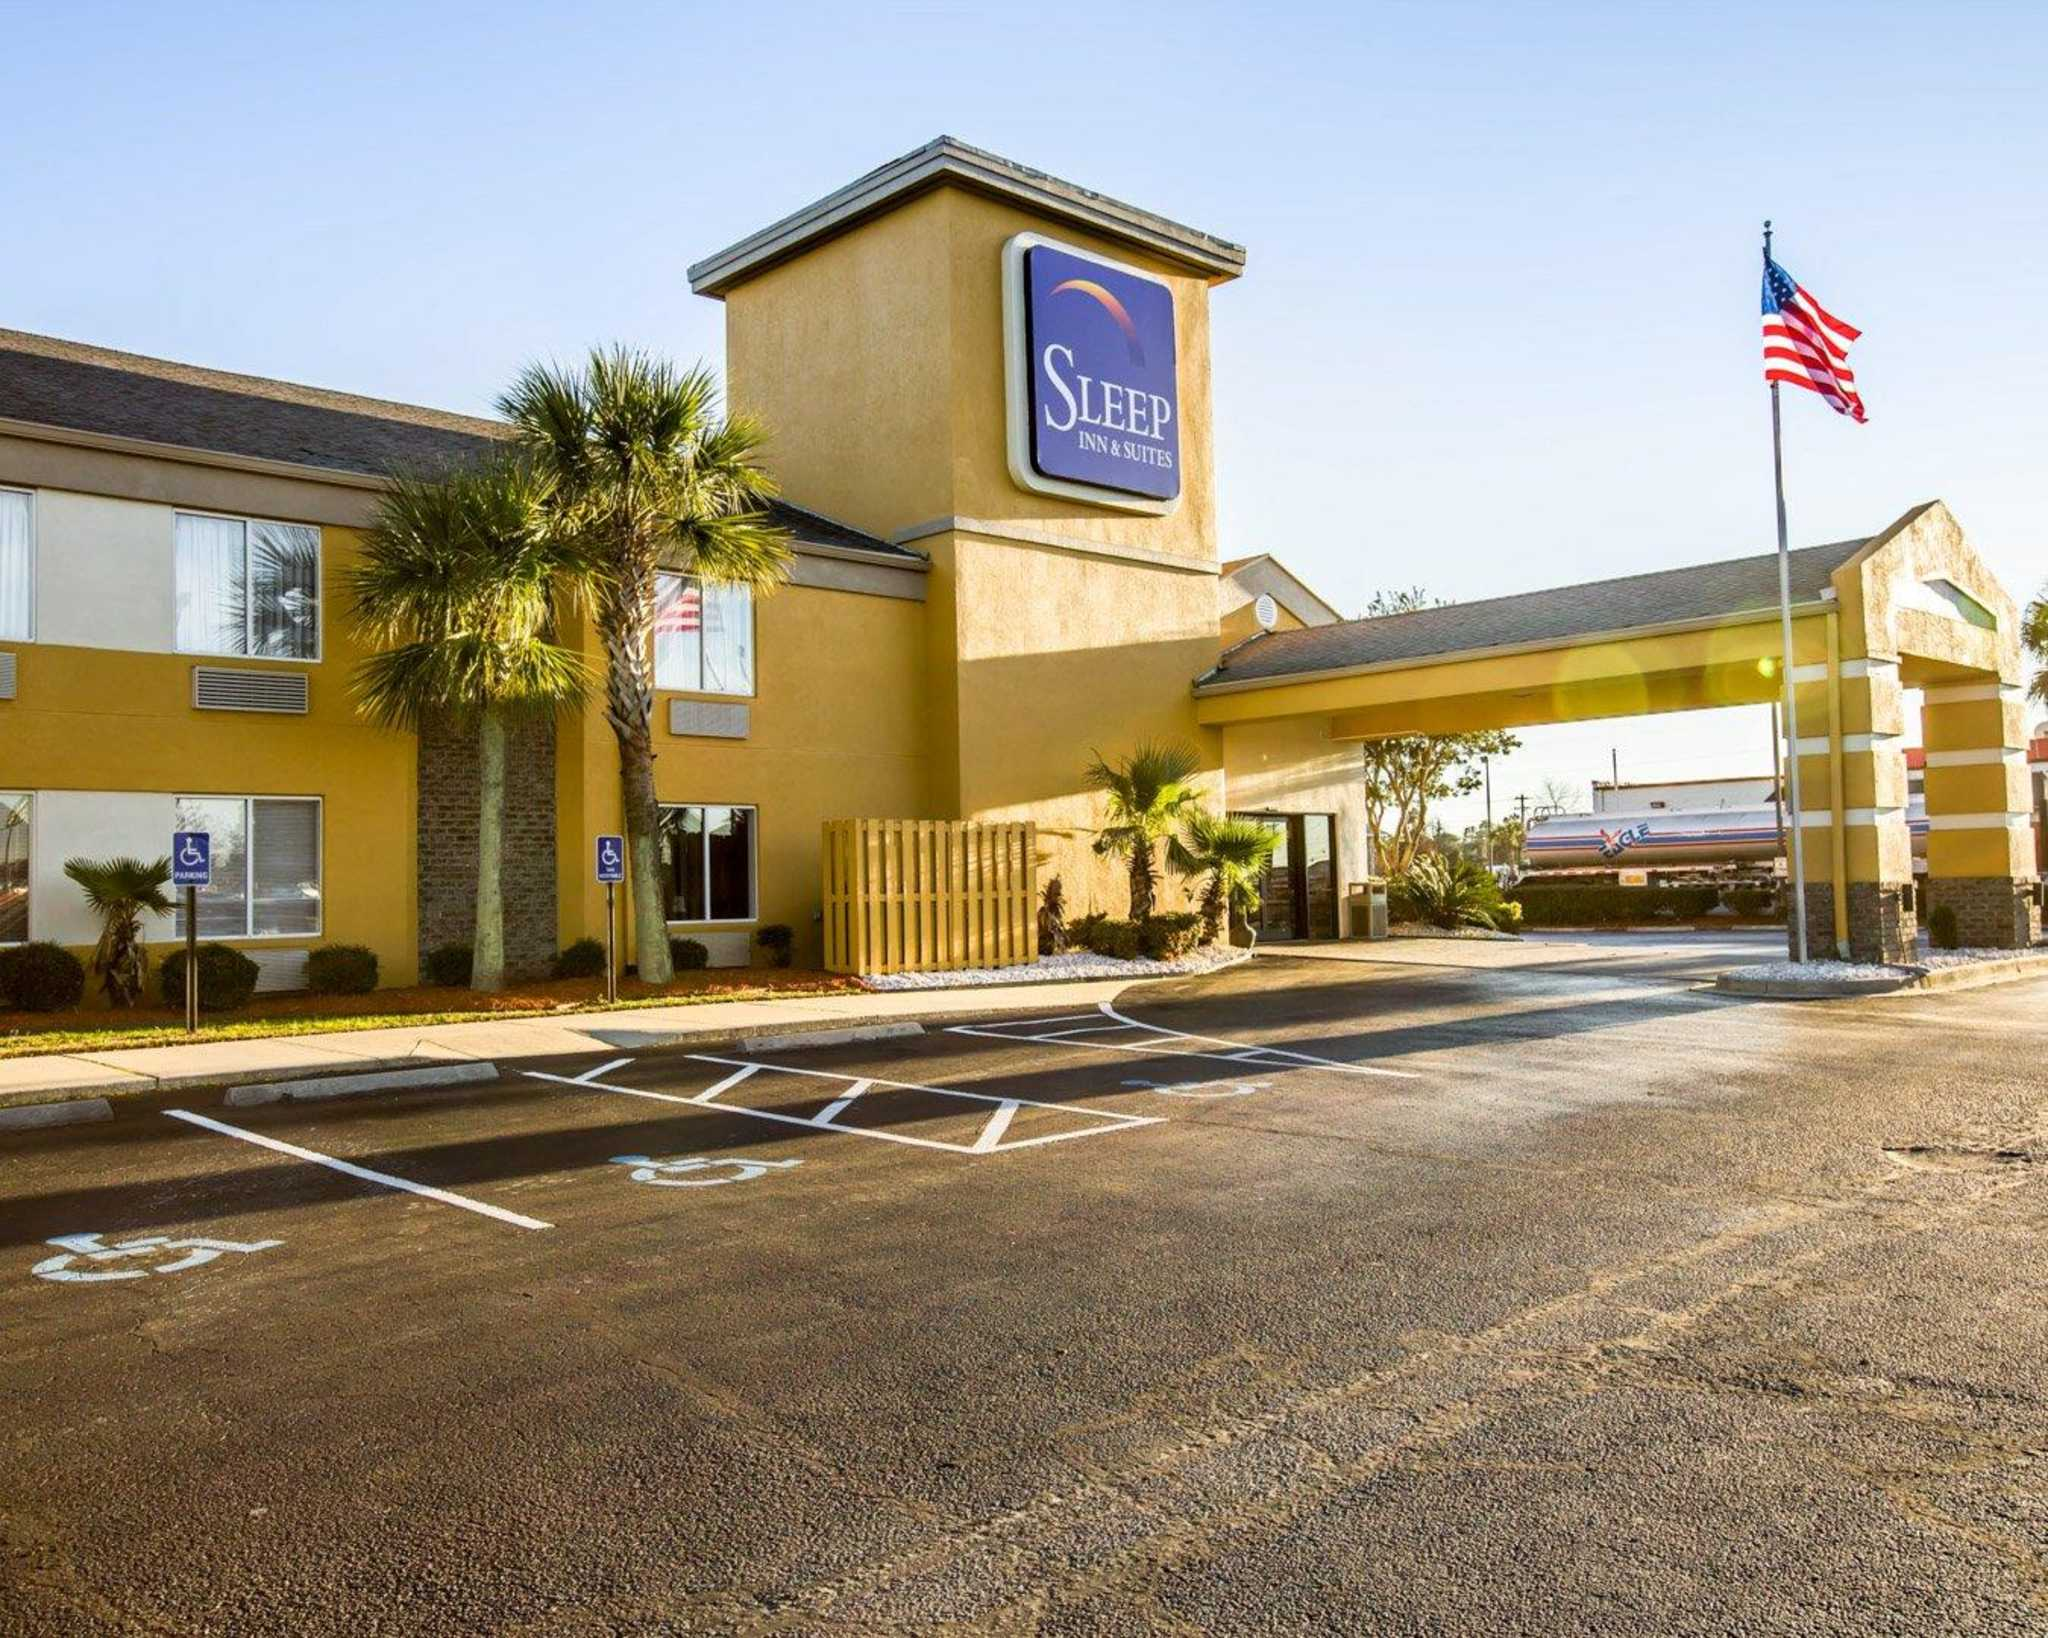 Hotels Near Tanger Outlet Center: Browse over hotels closest to Tanger Outlet Center. South Carolina • Myrtle Beach • Tanger Outlet Center. Myrtle Beach Travel Guide. Located in the heart of Myrtle Beach, this motel is within a minute walk of Tanger Outlet Center and Myrtle Beach Speedway. Legends Golf Club is 3 mi (